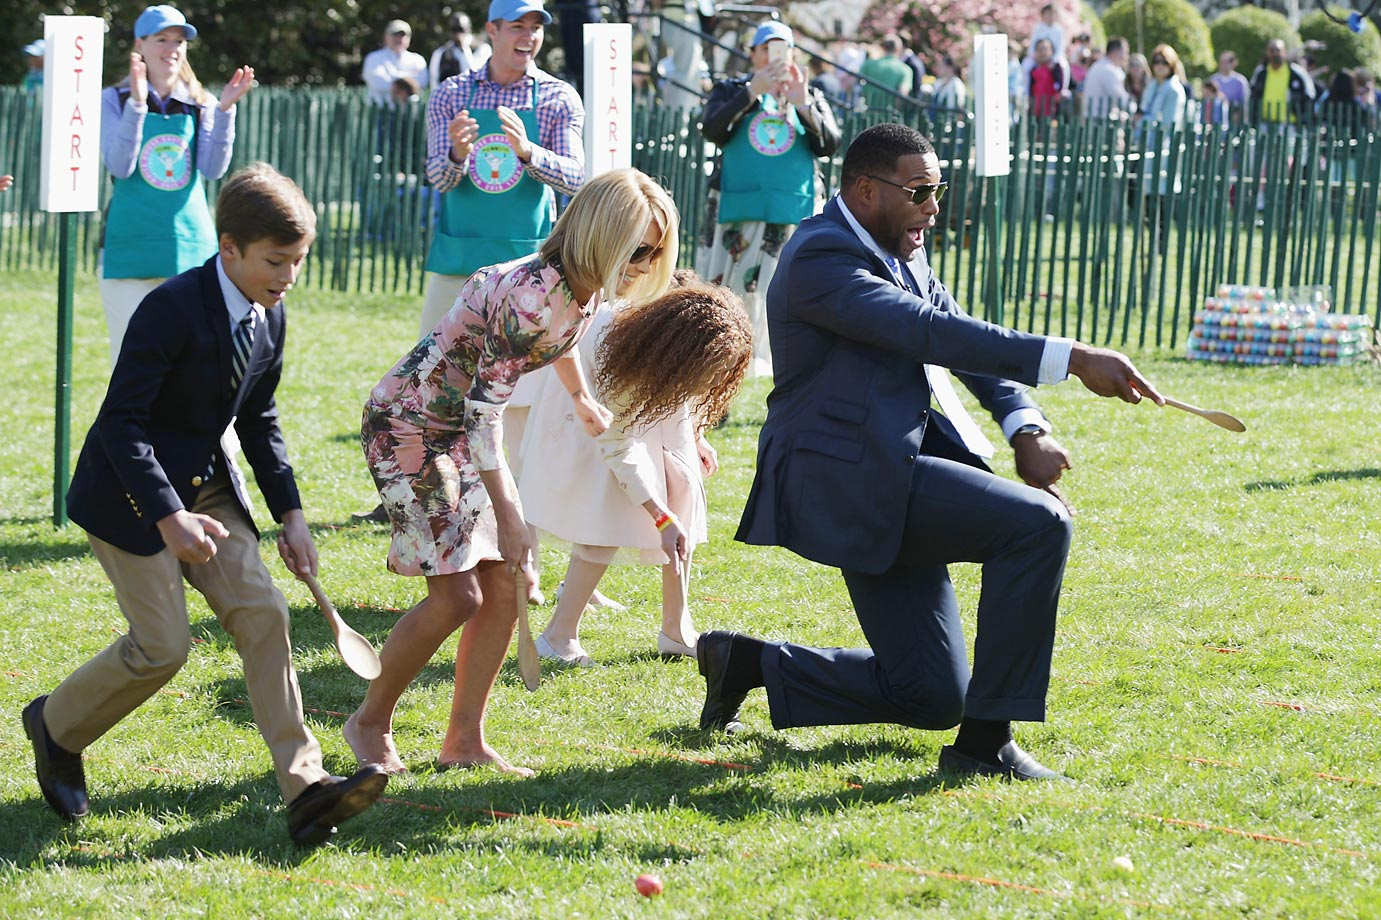 Kelly Ripa and Michael Strahan participate in the White House Easter Egg Roll on the South Lawn.